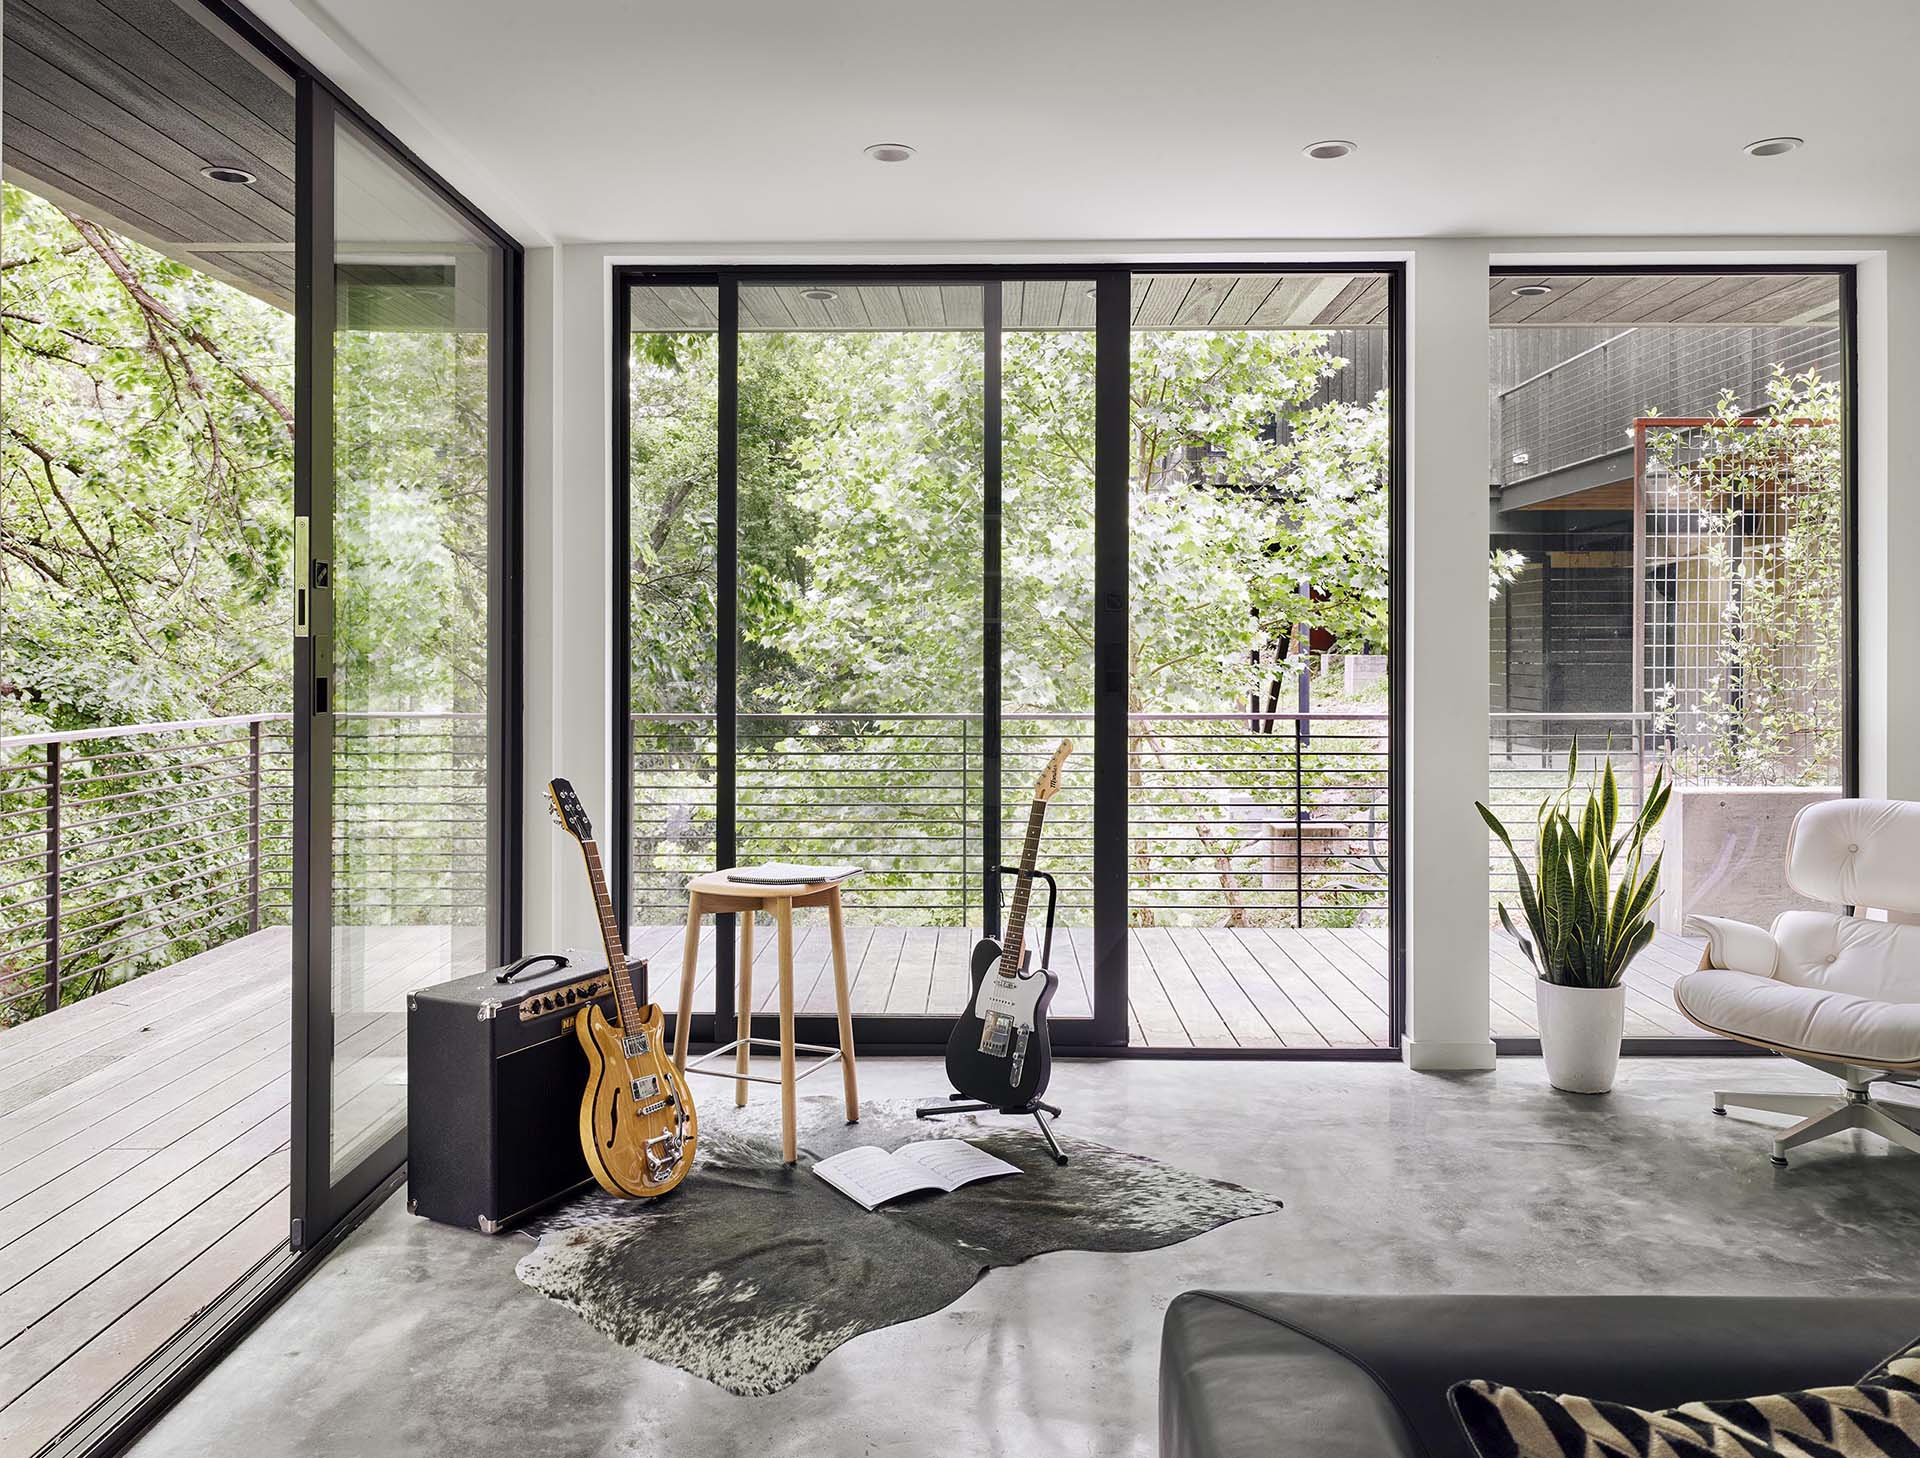 A modern living room with floor-to-ceiling windows and sliding glass doors.